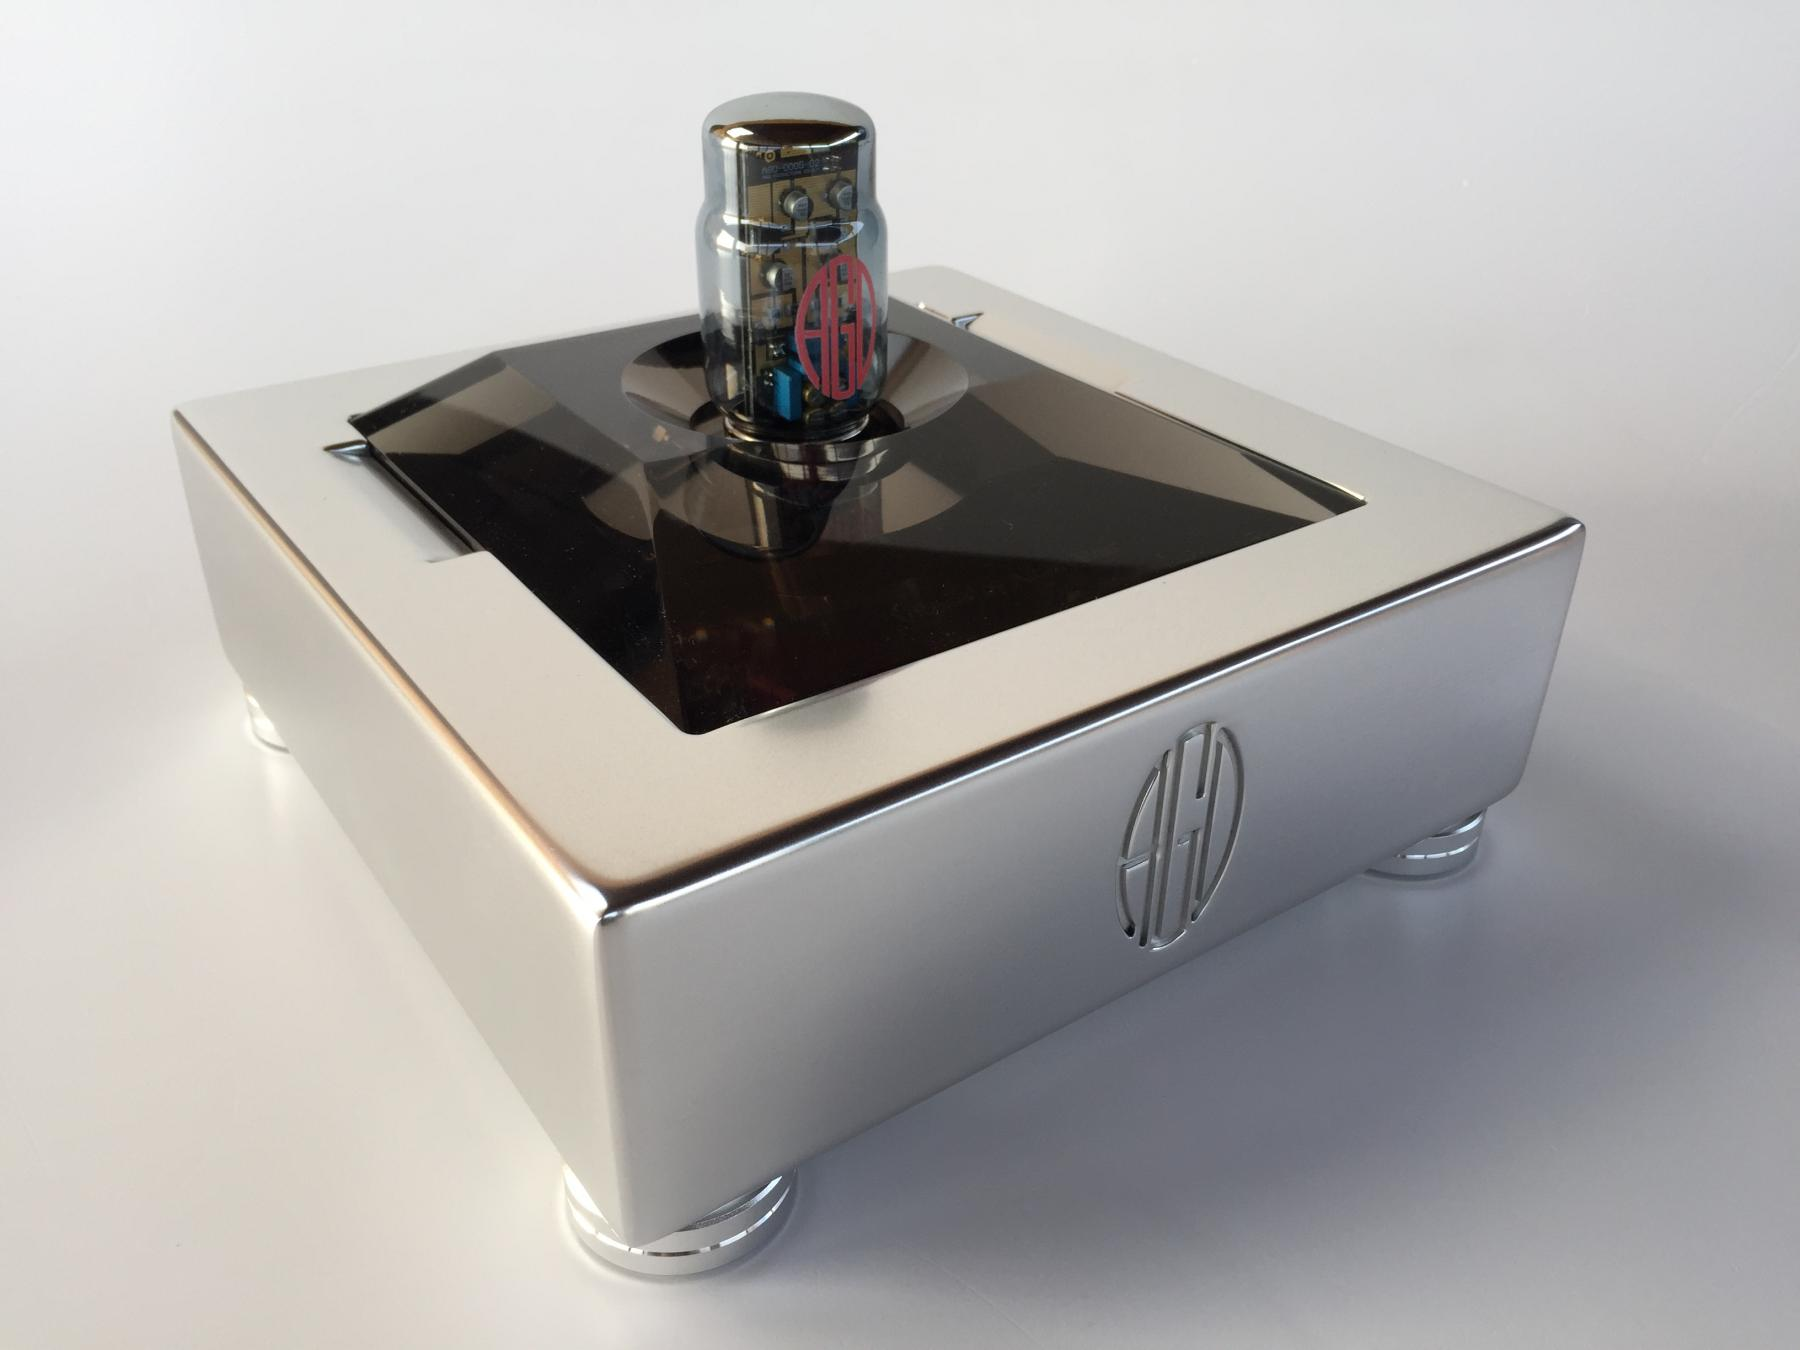 Agd Vivace Power Amps